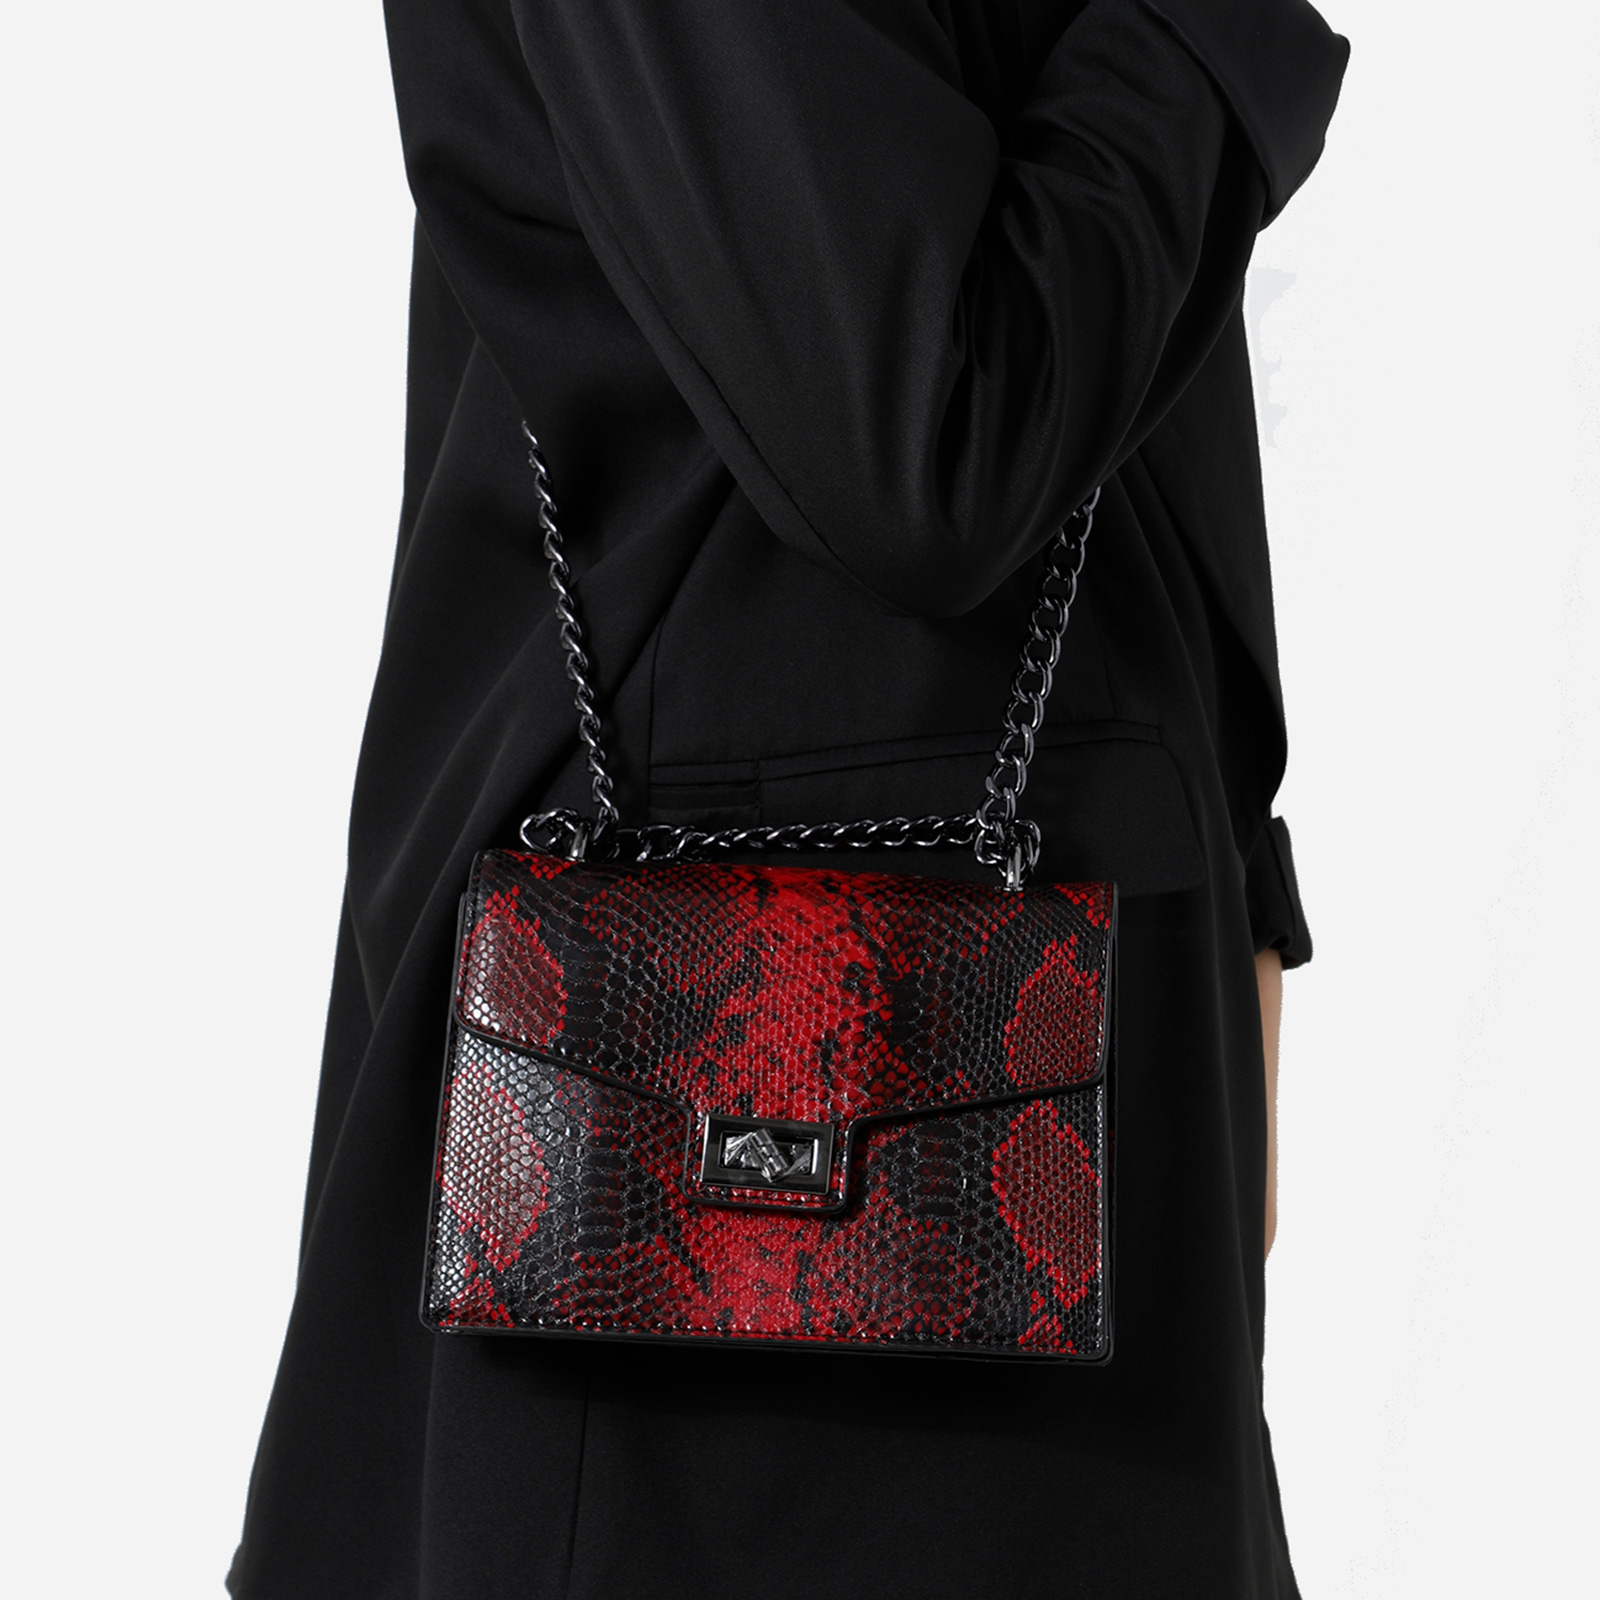 Chain Detail Cross Body Bag In Red Snake Print Faux Leather